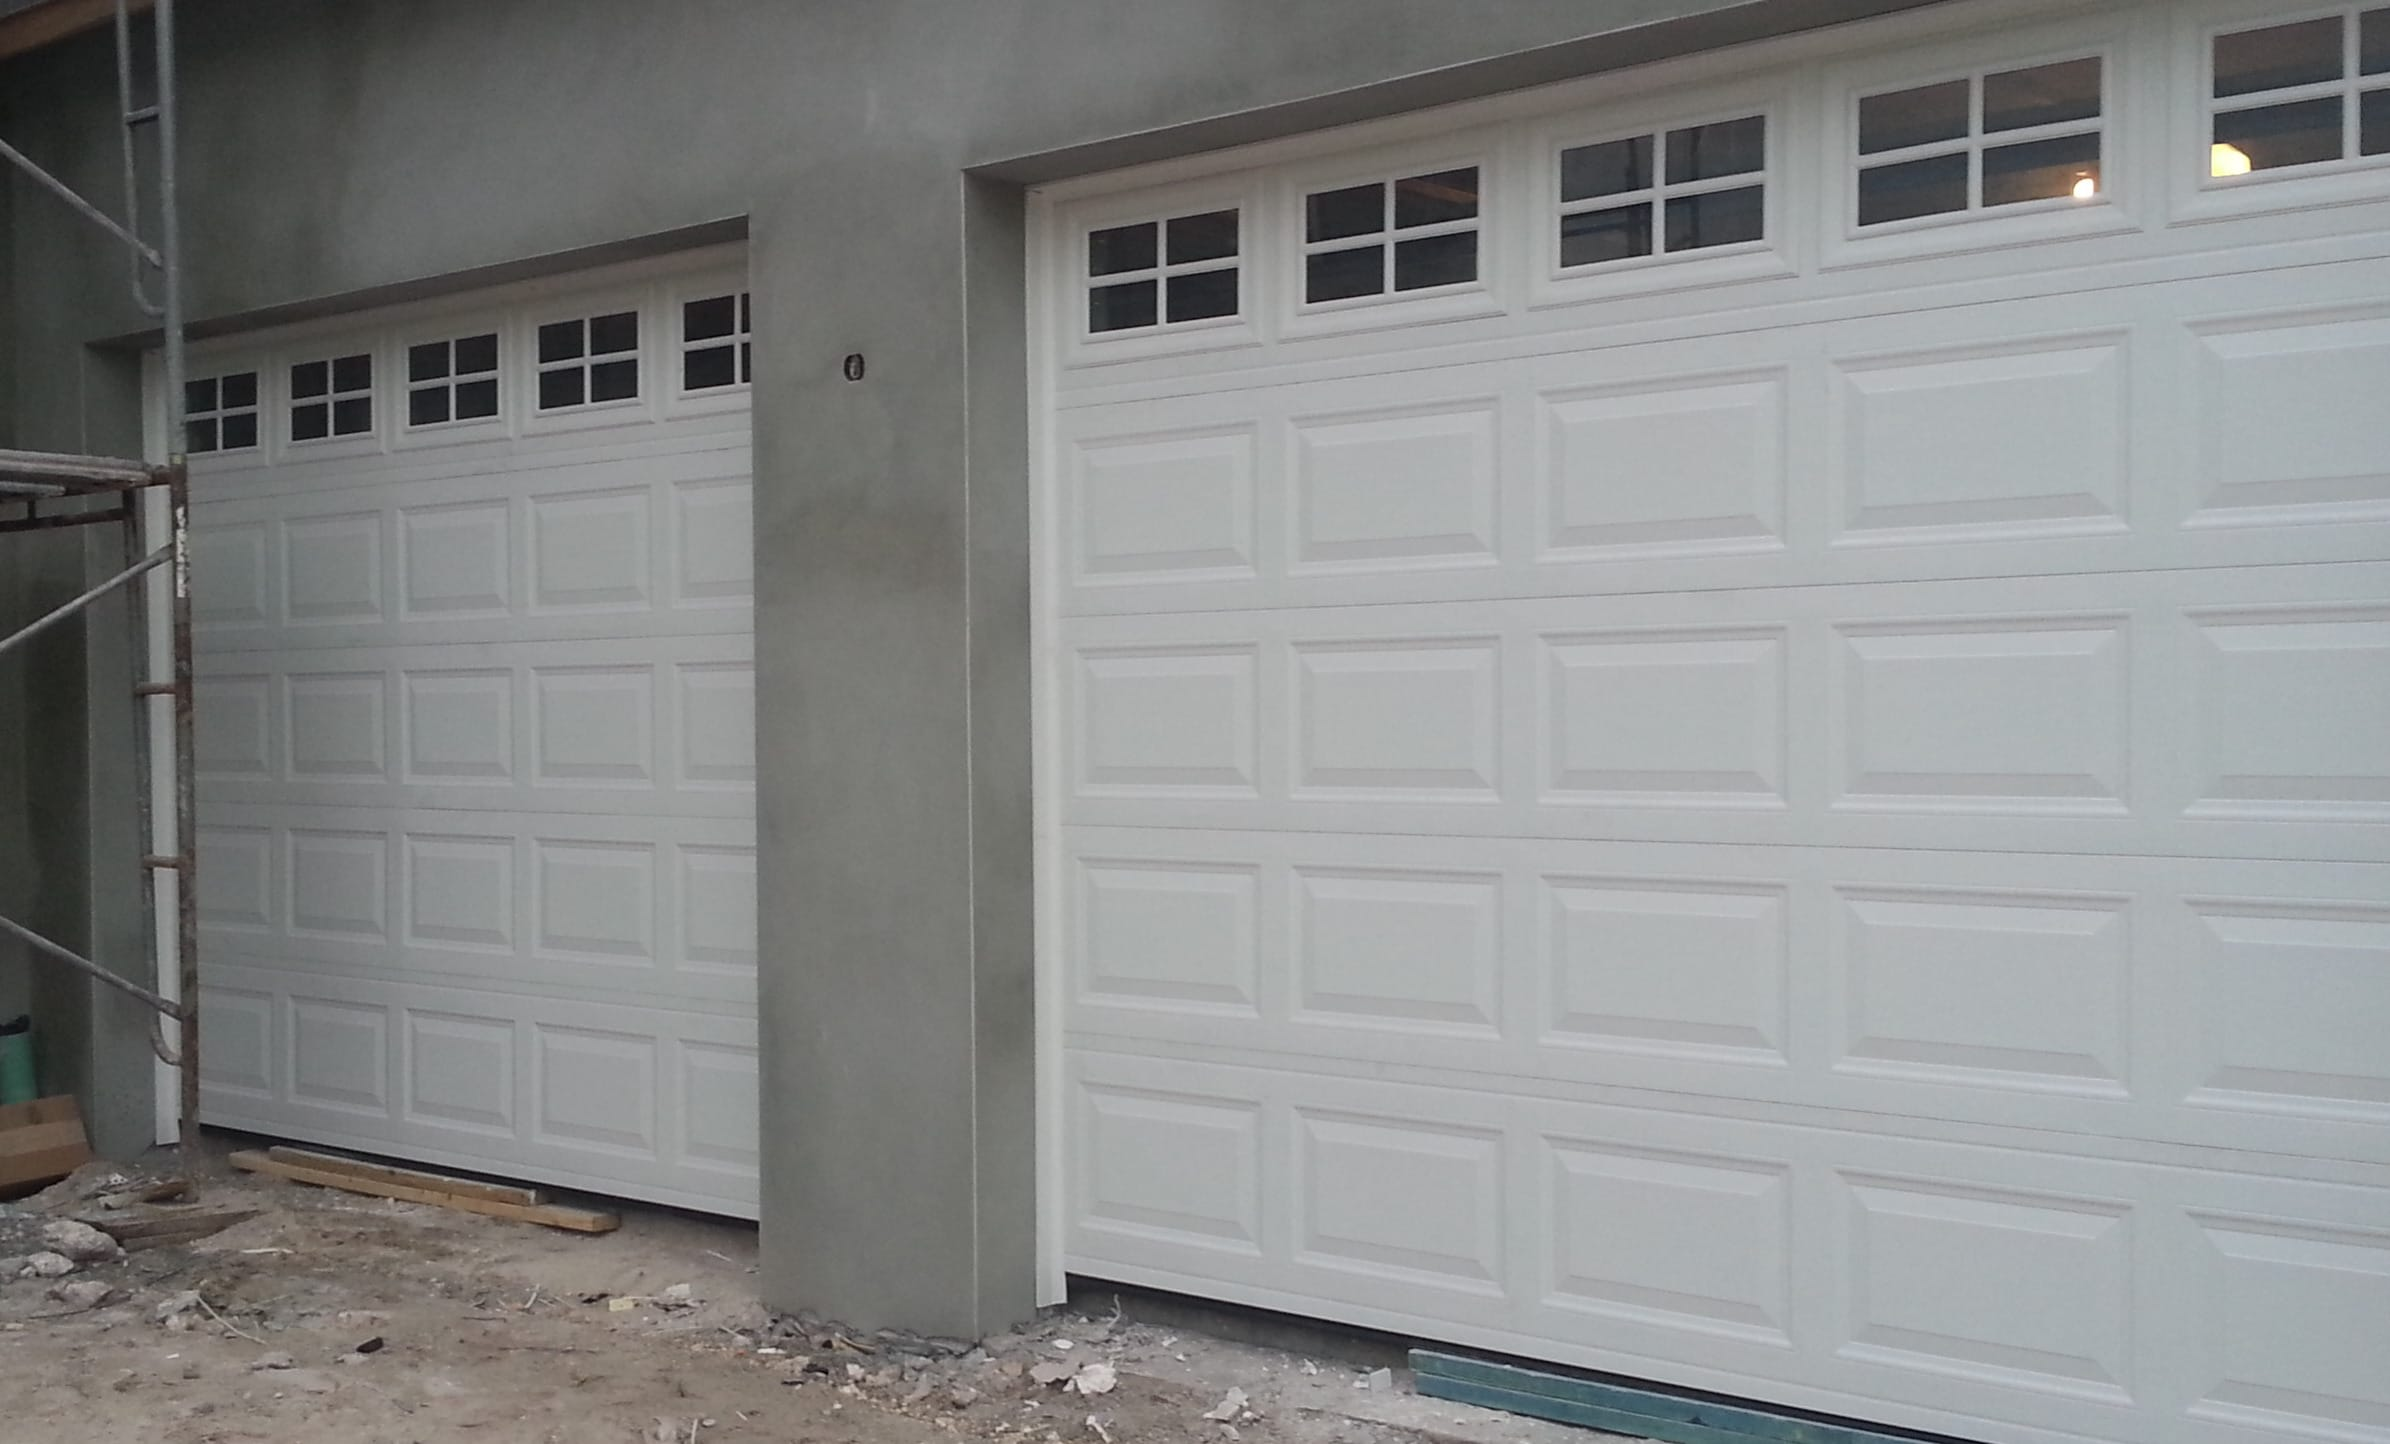 Garage Doors Miami Garage Door Repair Miami  Autos Post. Solar Power In Chennai Credit Cards From Citi. Mobile Games Development Nyc Culinary Classes. Ohio Auto Insurance Company Sata Dvd Drivers. Enterprise System Management Tools. Savings Account Compare Cluster Mailbox Units. Best Wood Floor For Bathroom. Retractable Banner Display Car Insurance Co. Indiana Wesleyan University Louisville Ky